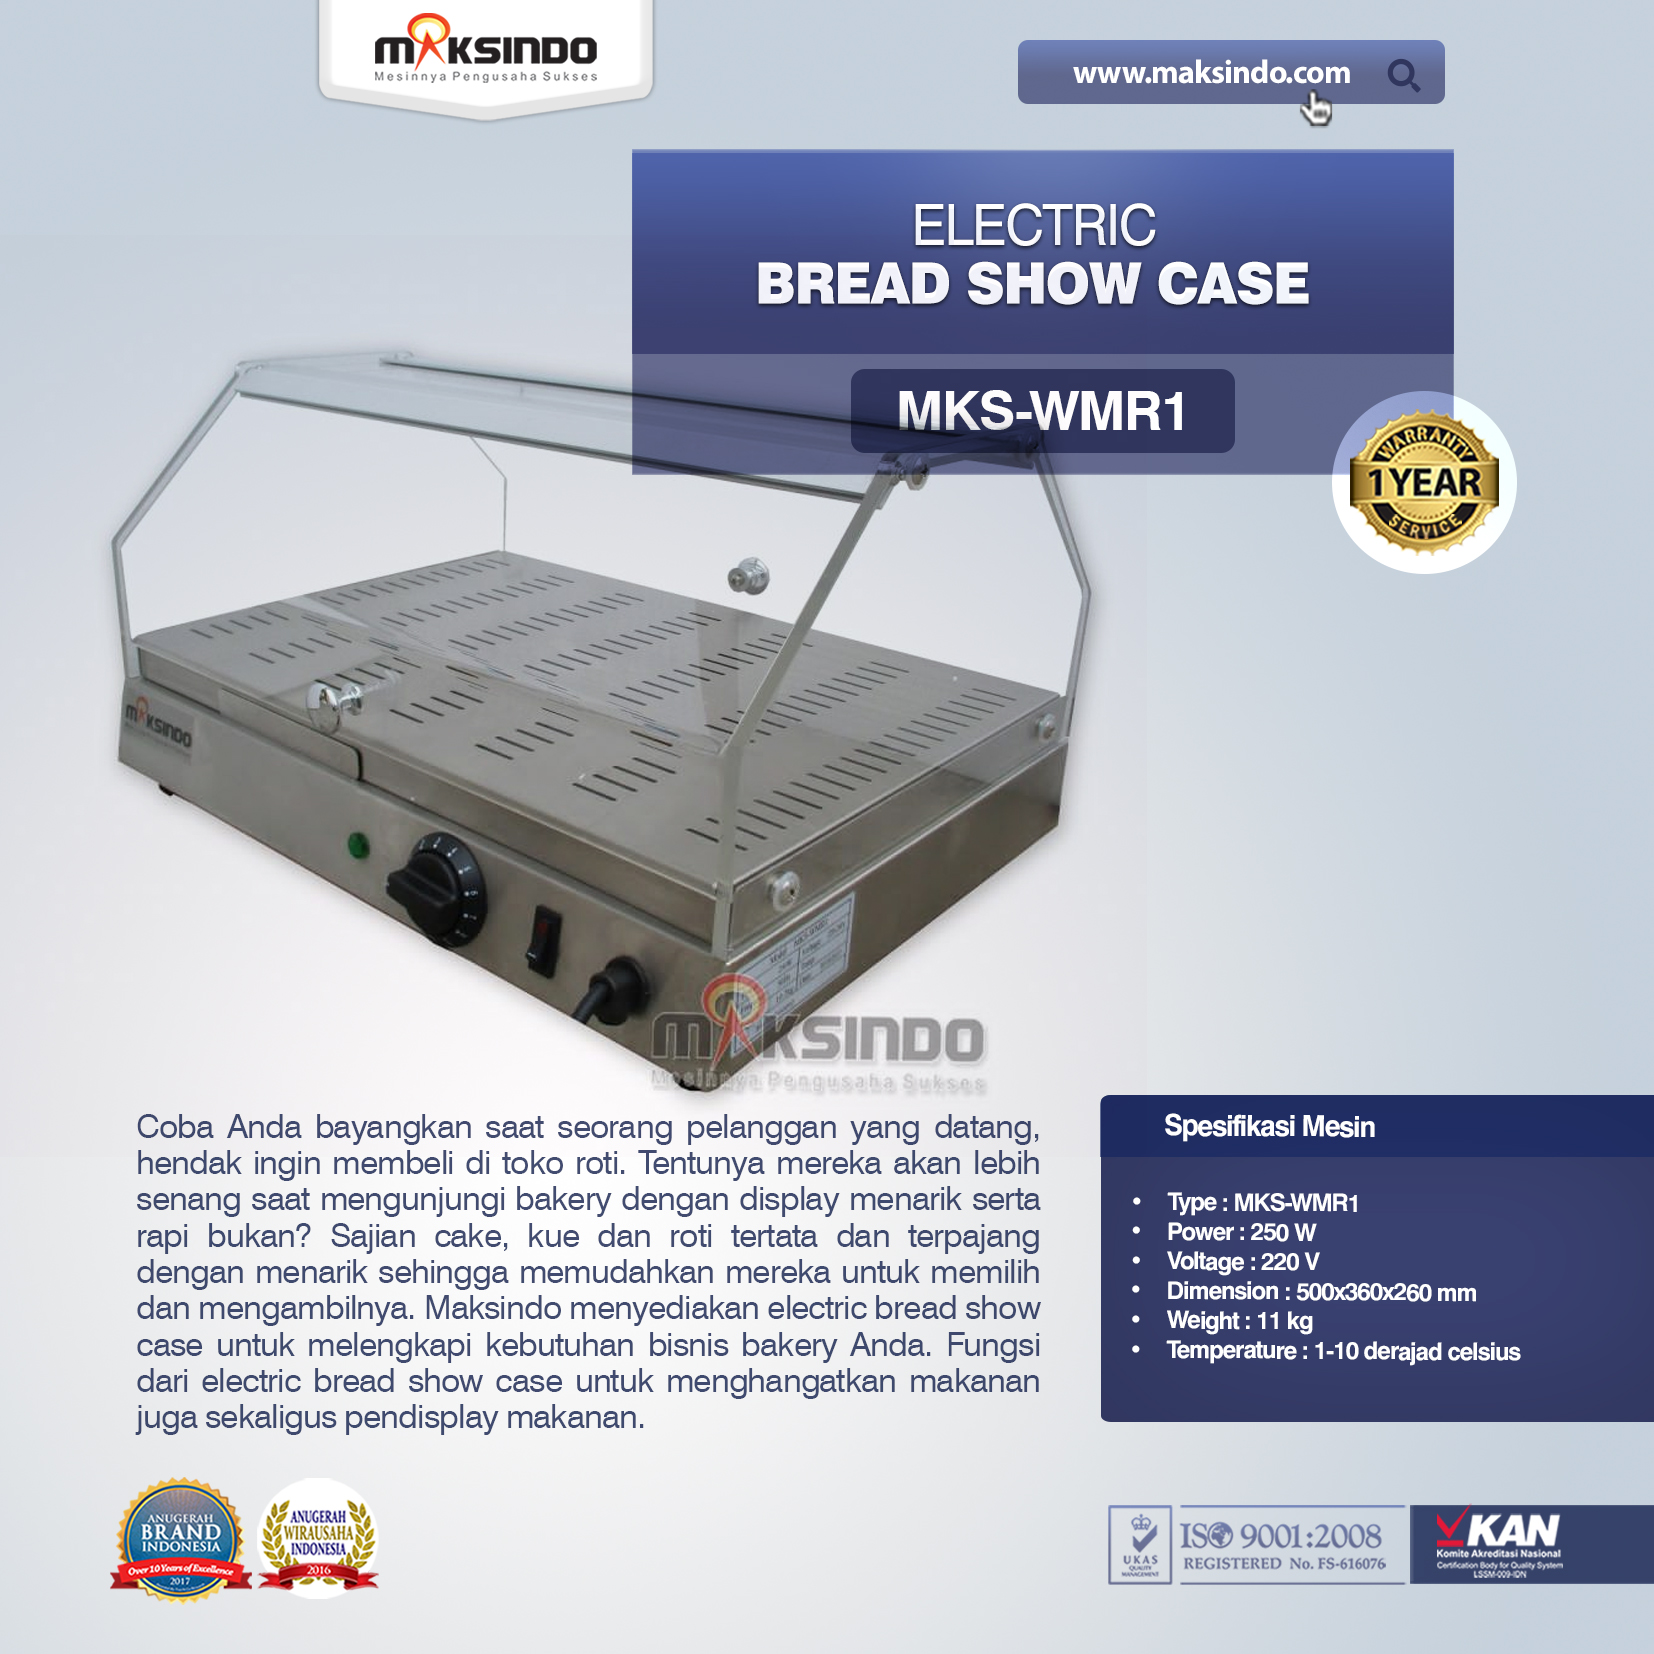 Jual Electric Bread Show Case MKS-WMR1 di Medan